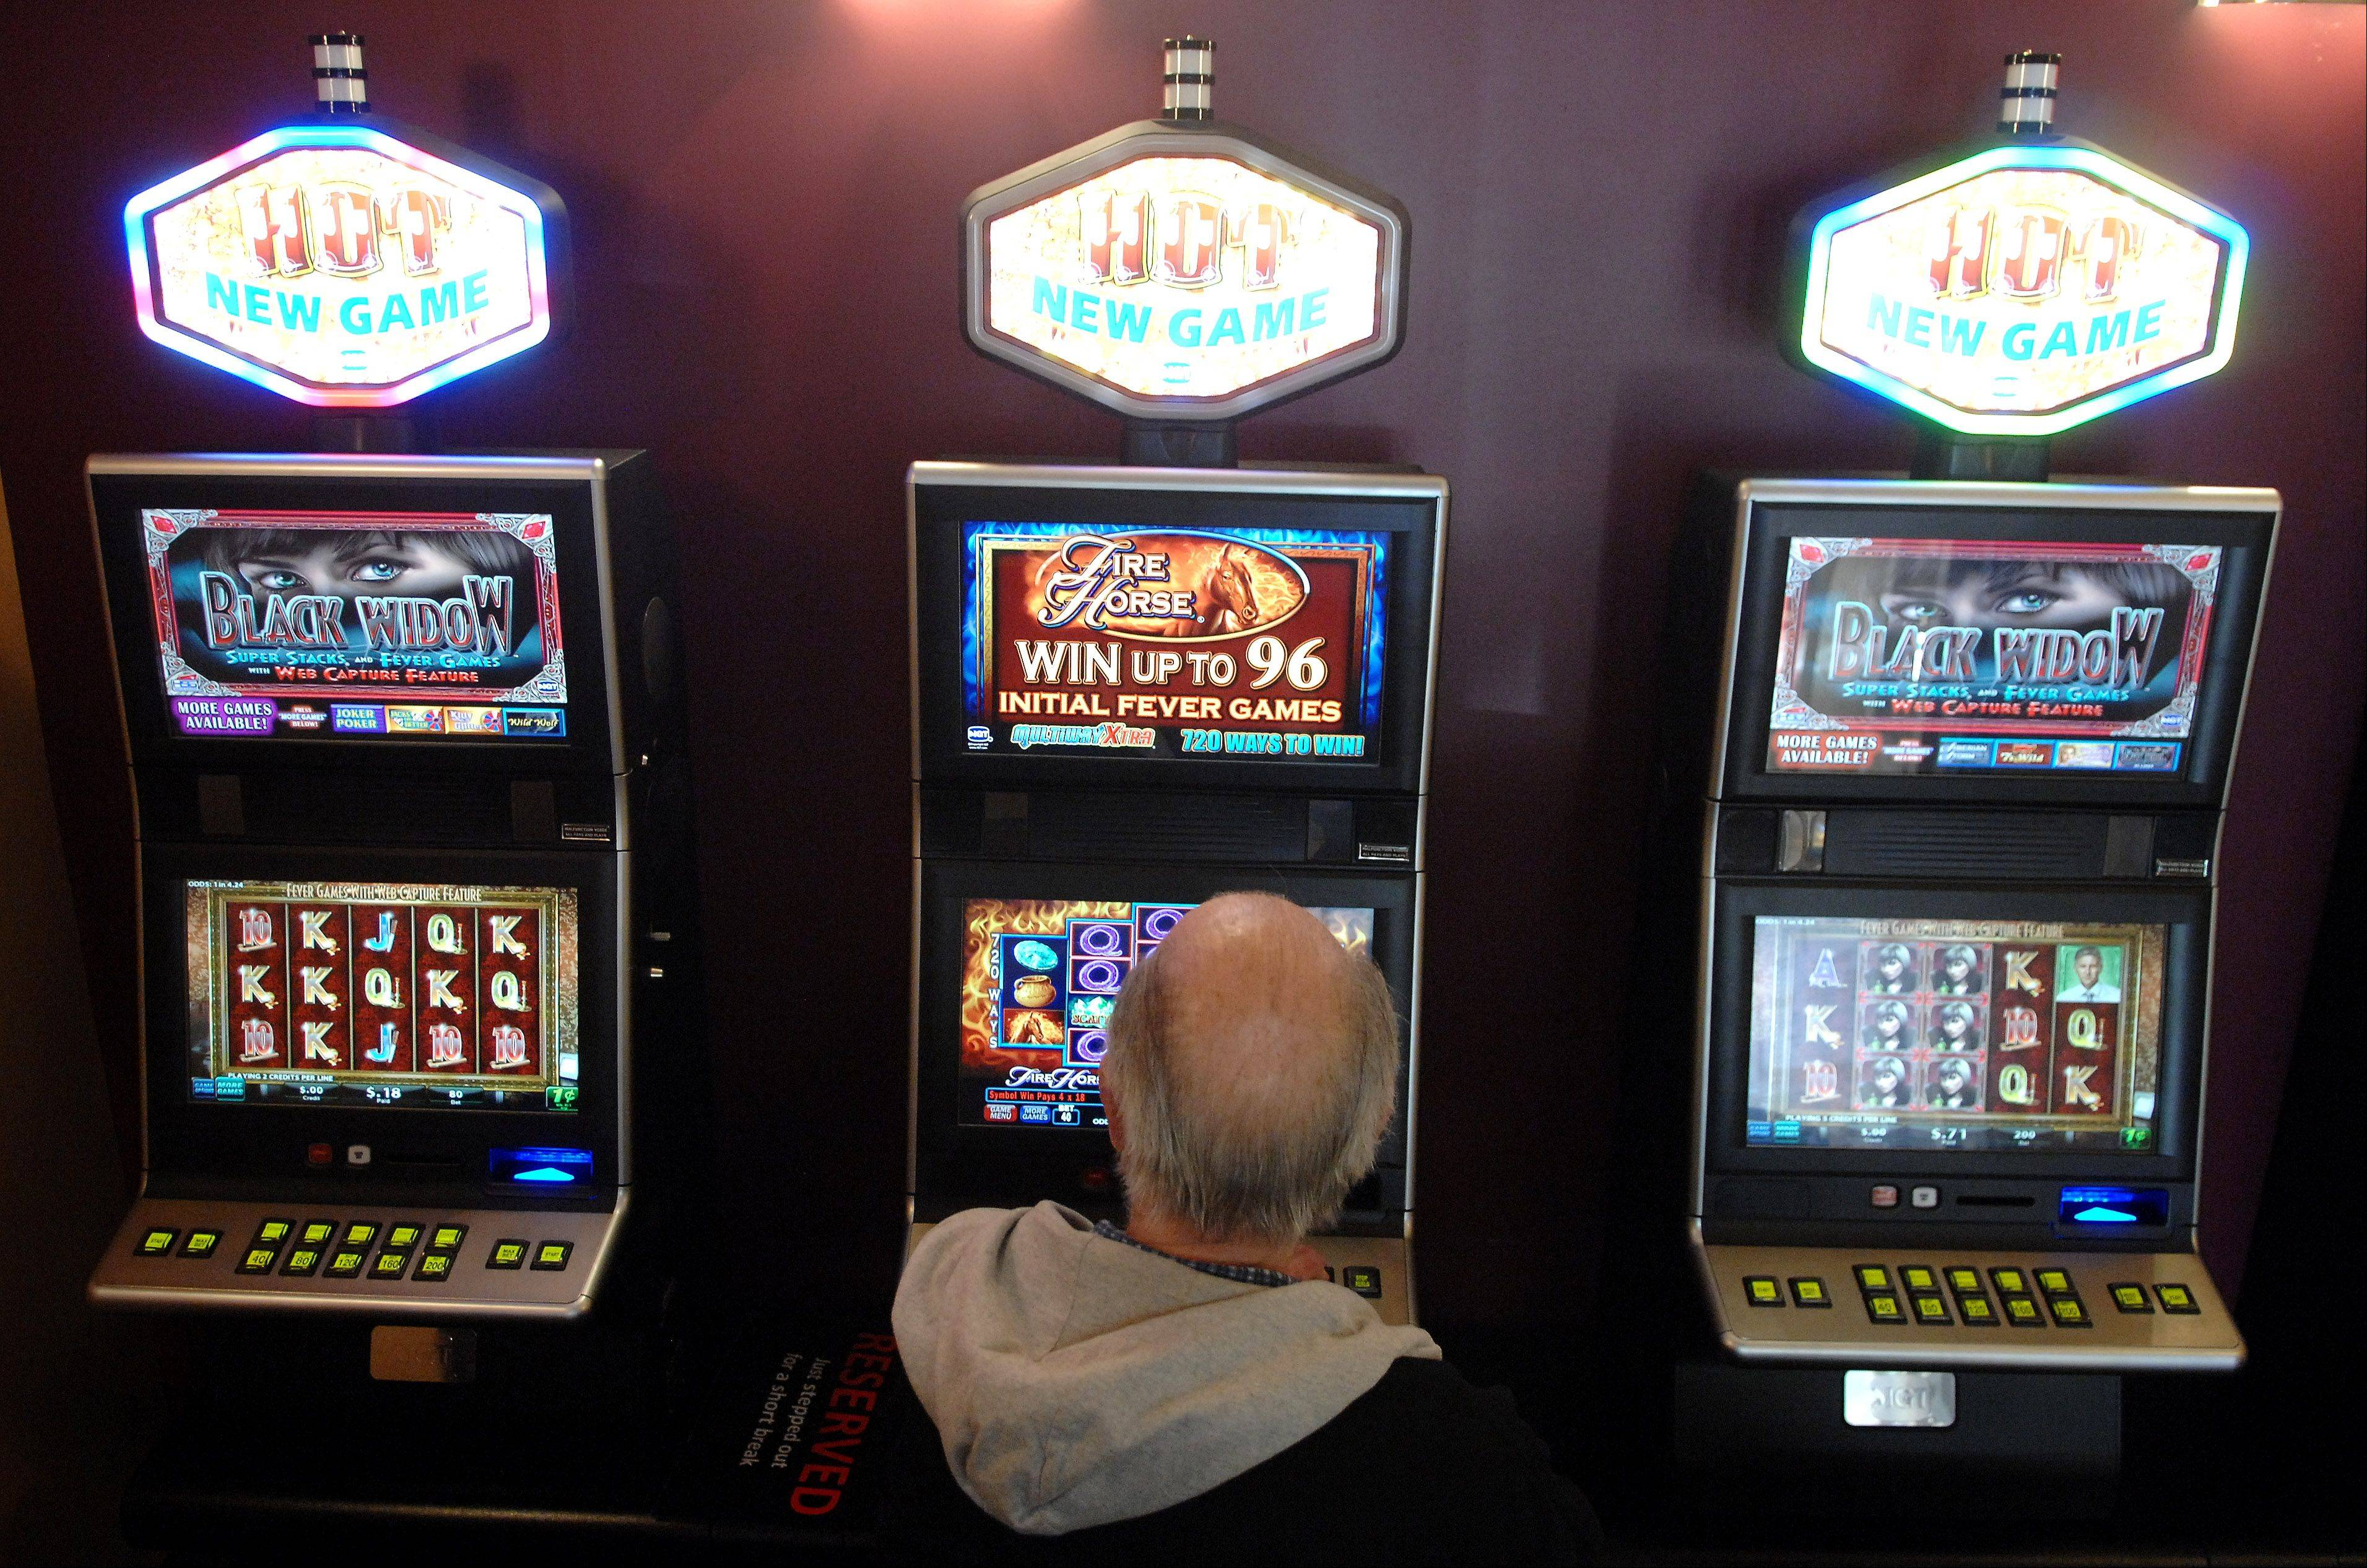 Cermak wants video gambling in Island Lake, but board not ready to vote